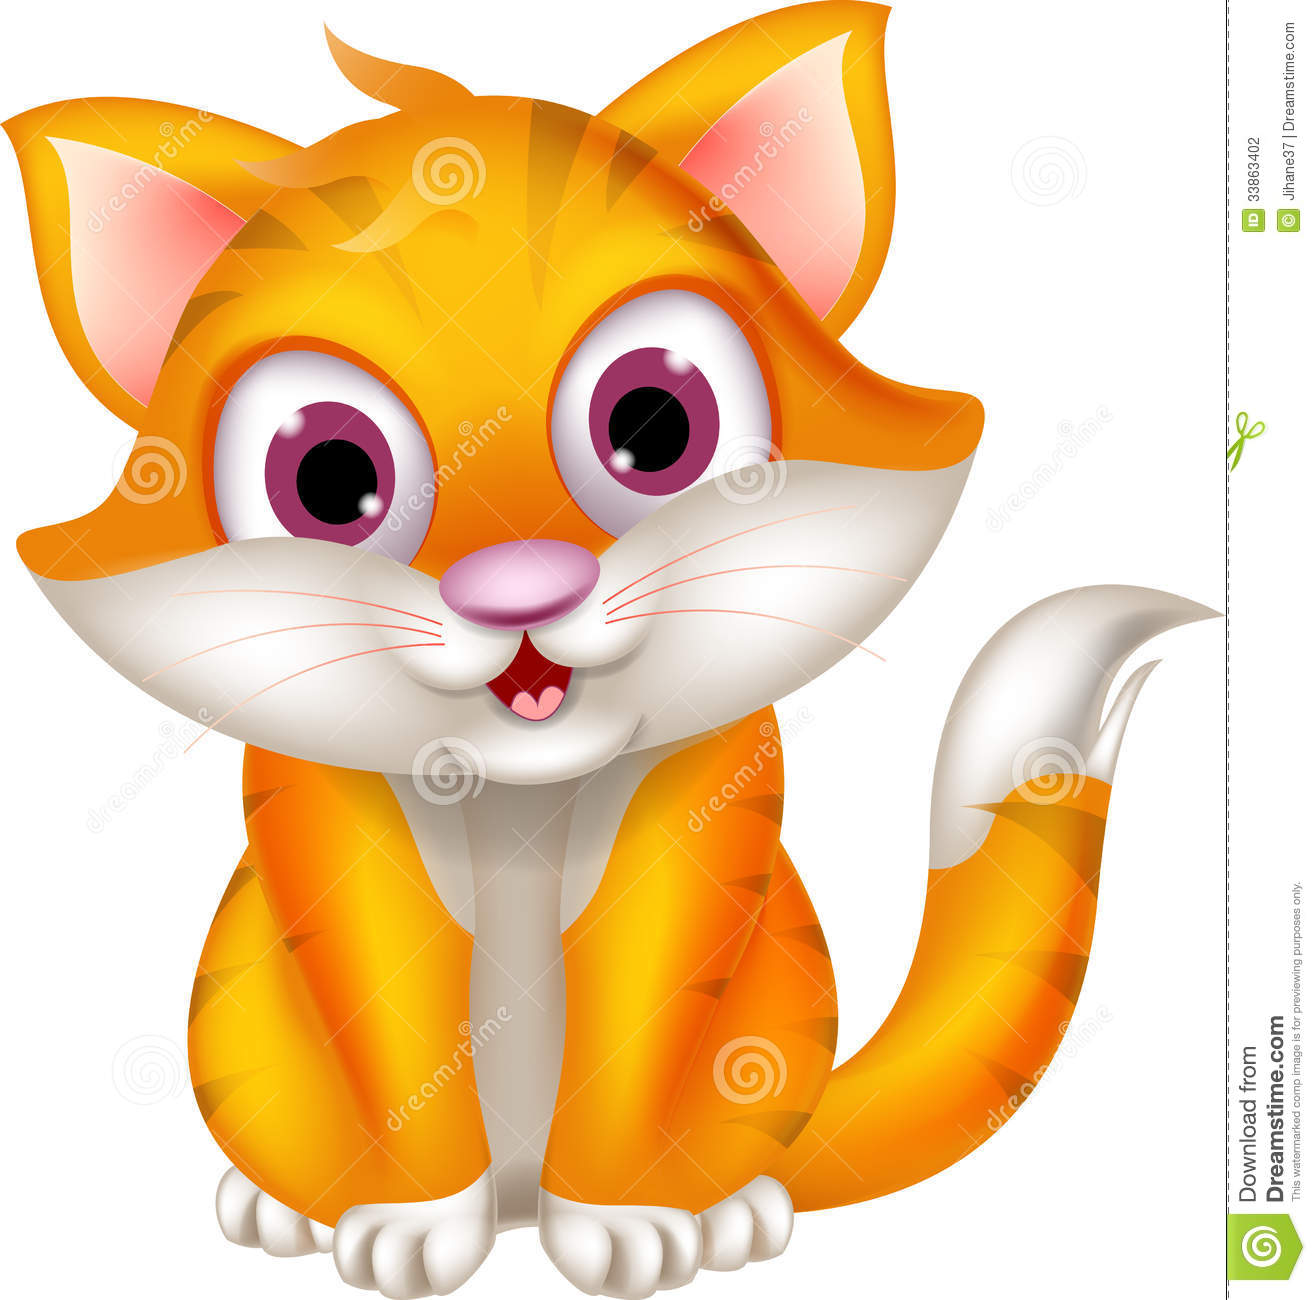 Cute Cat Cartoon Sitting Stock graphy Image